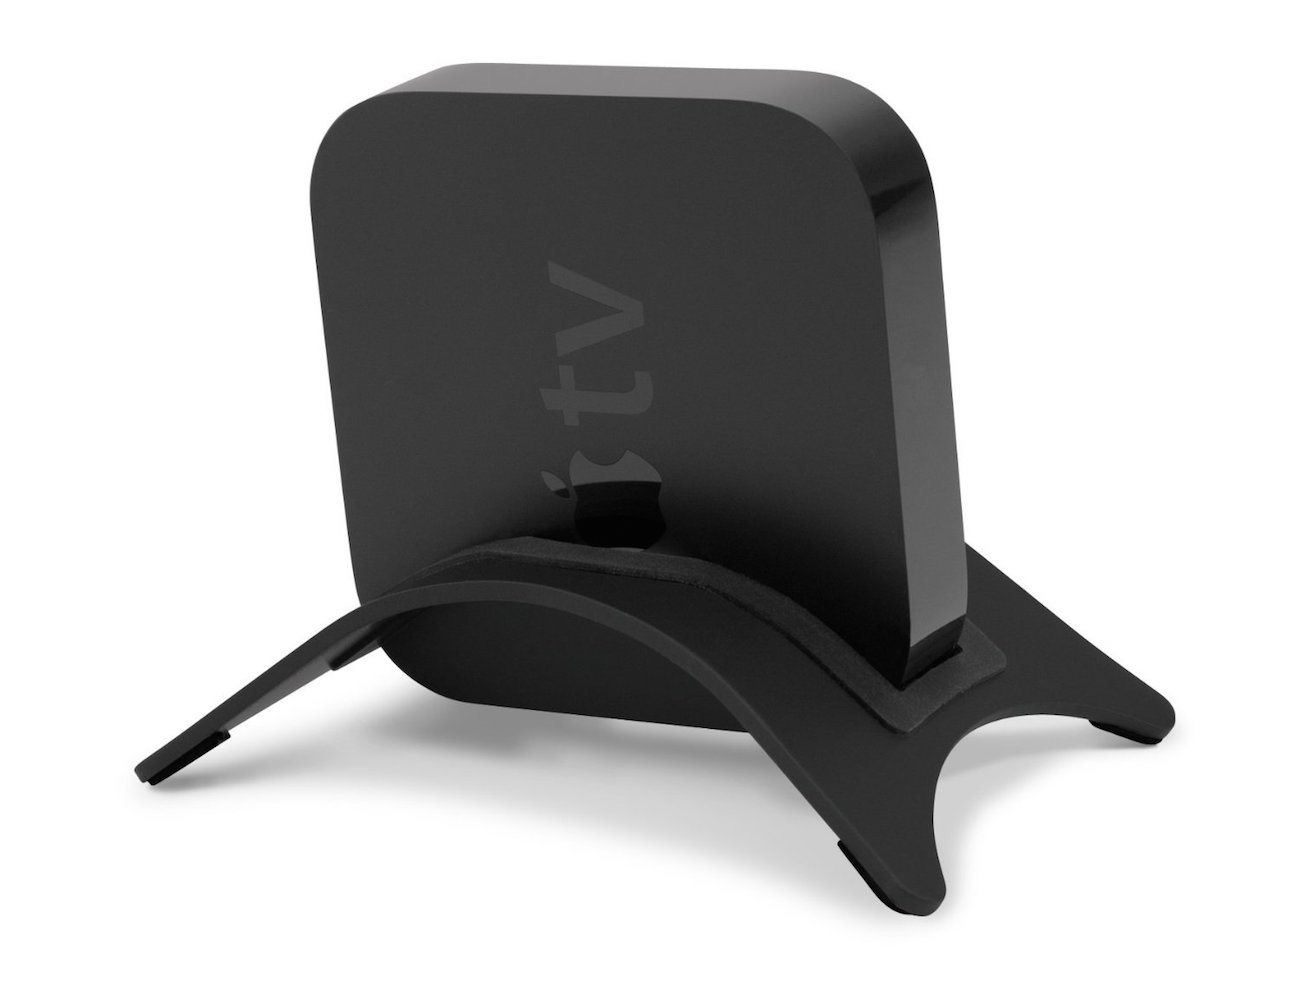 NuStand Alloy – Sturdy Display Stand for Apple TV